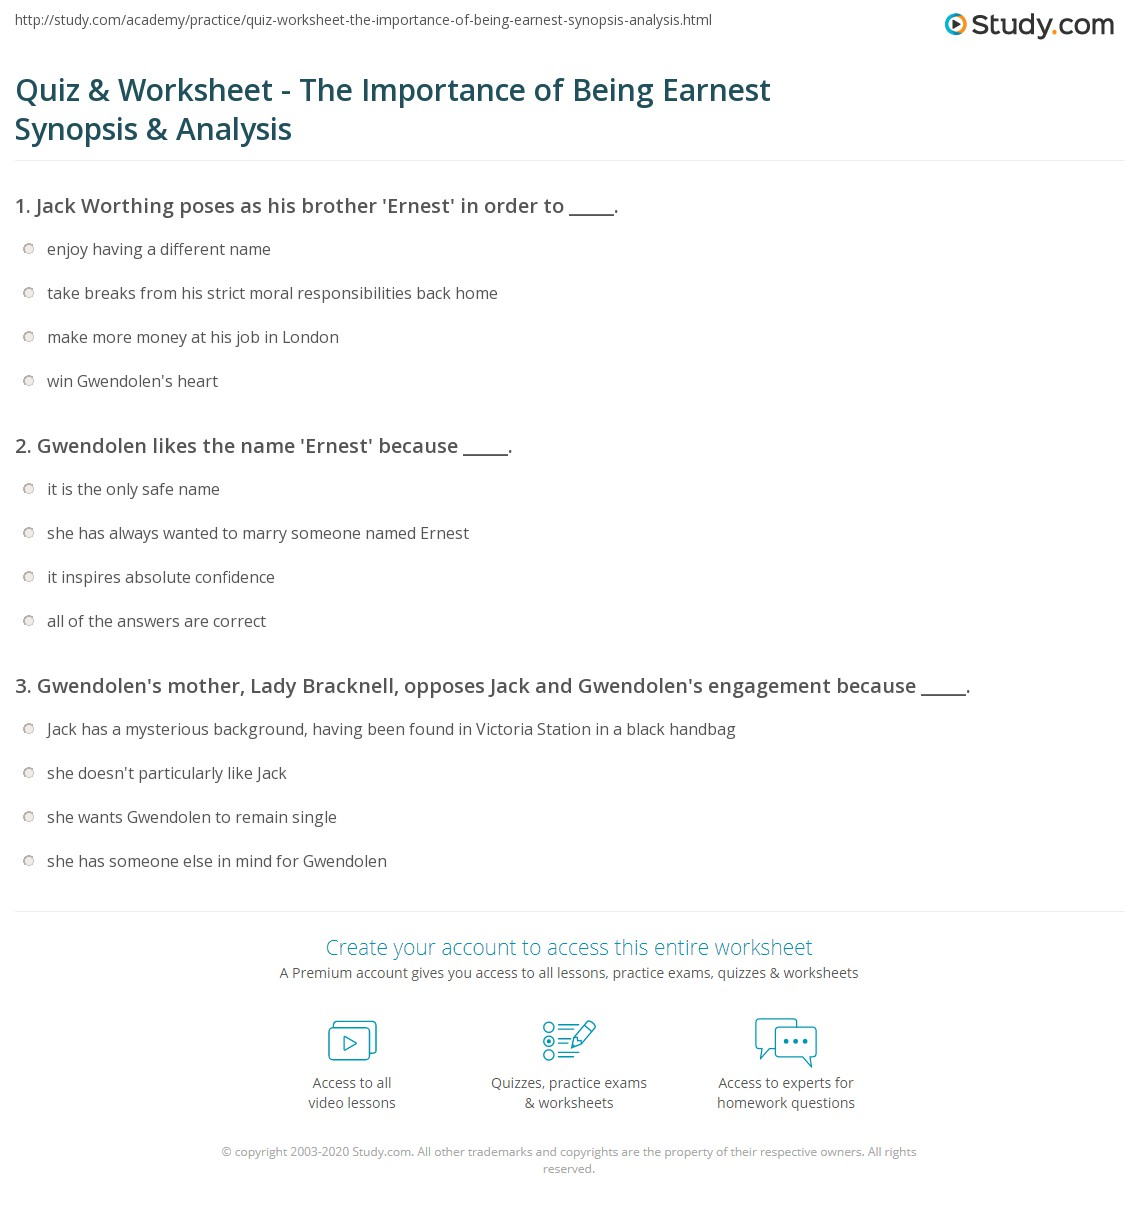 quiz worksheet the importance of being earnest synopsis analysis. Black Bedroom Furniture Sets. Home Design Ideas